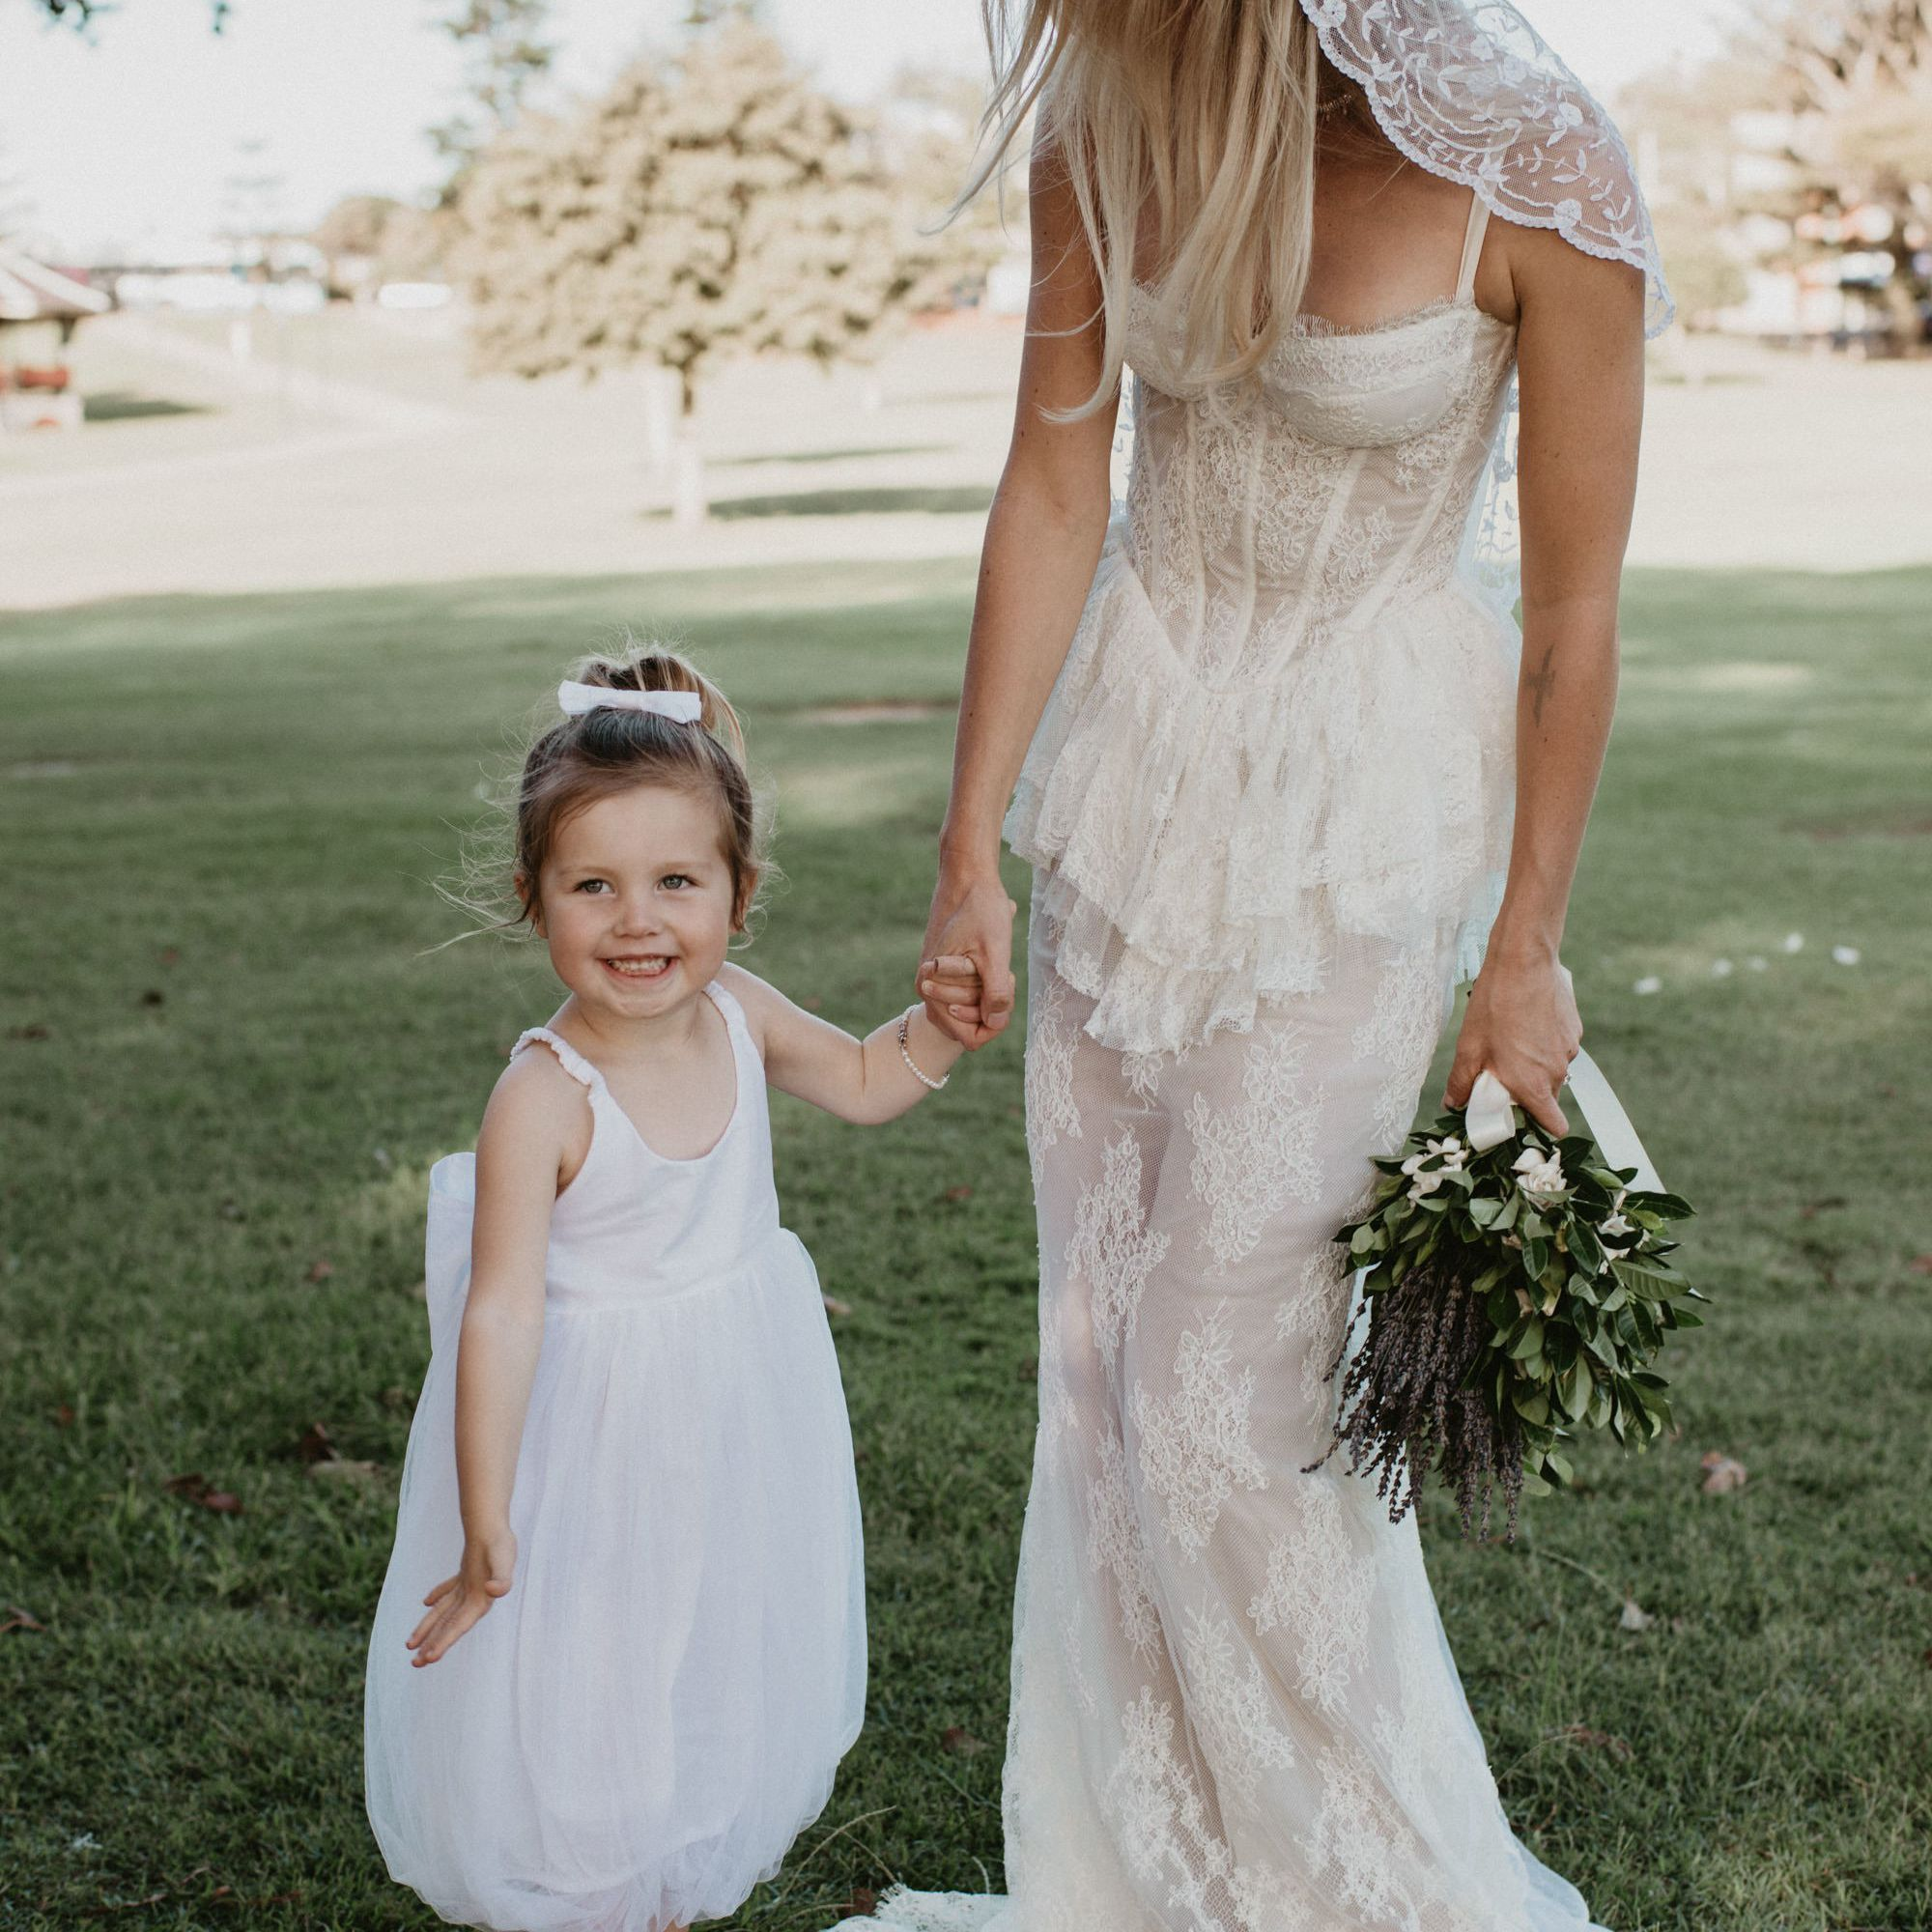 27 Must Take Photos Of The Cutest Kids At Your Wedding